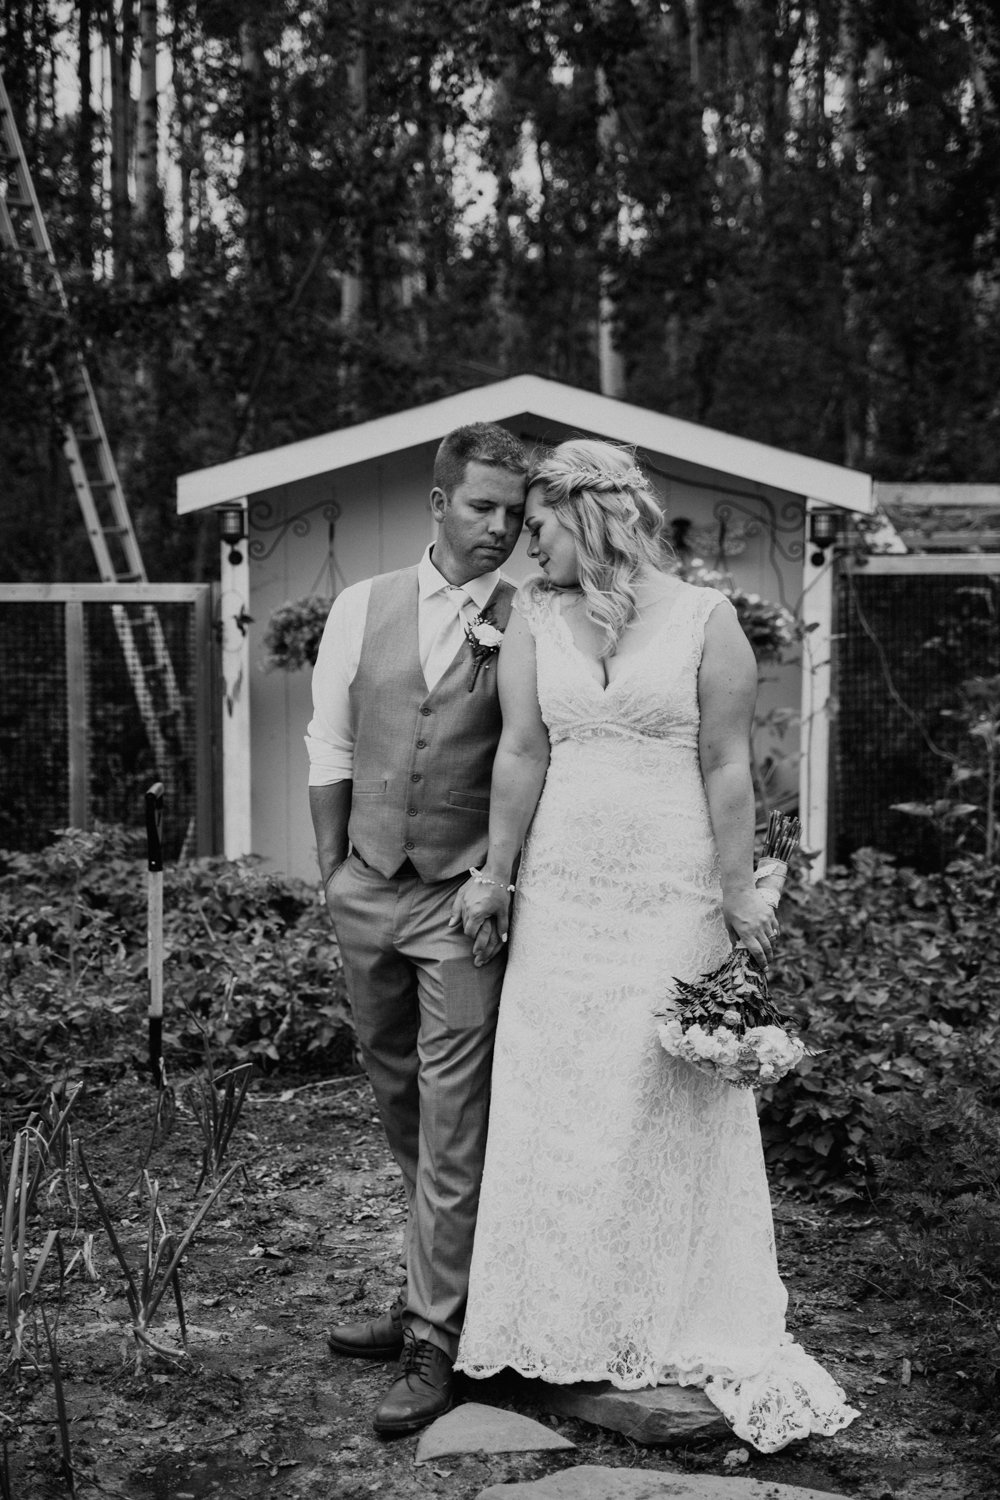 Wedding Song Explain Choice For Grow Old With Me By Sunny Sweeney We Chose This Because Out Of All The Songs Listened To Was One